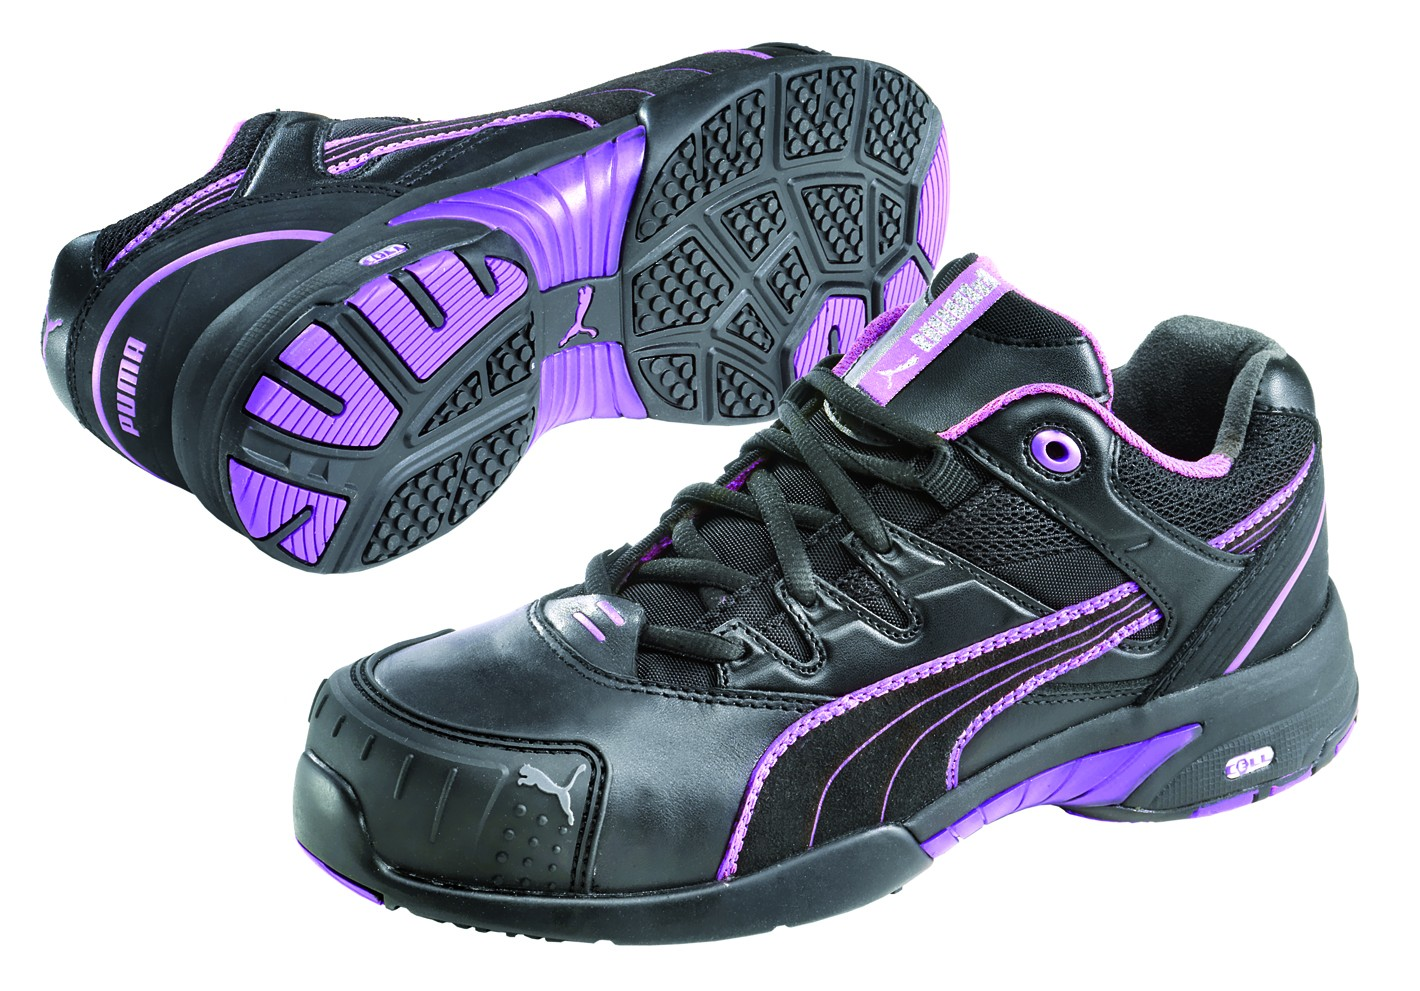 Puma STEPPER LADIES LOW Leather/Textile Upper Trainer Safety Shoes